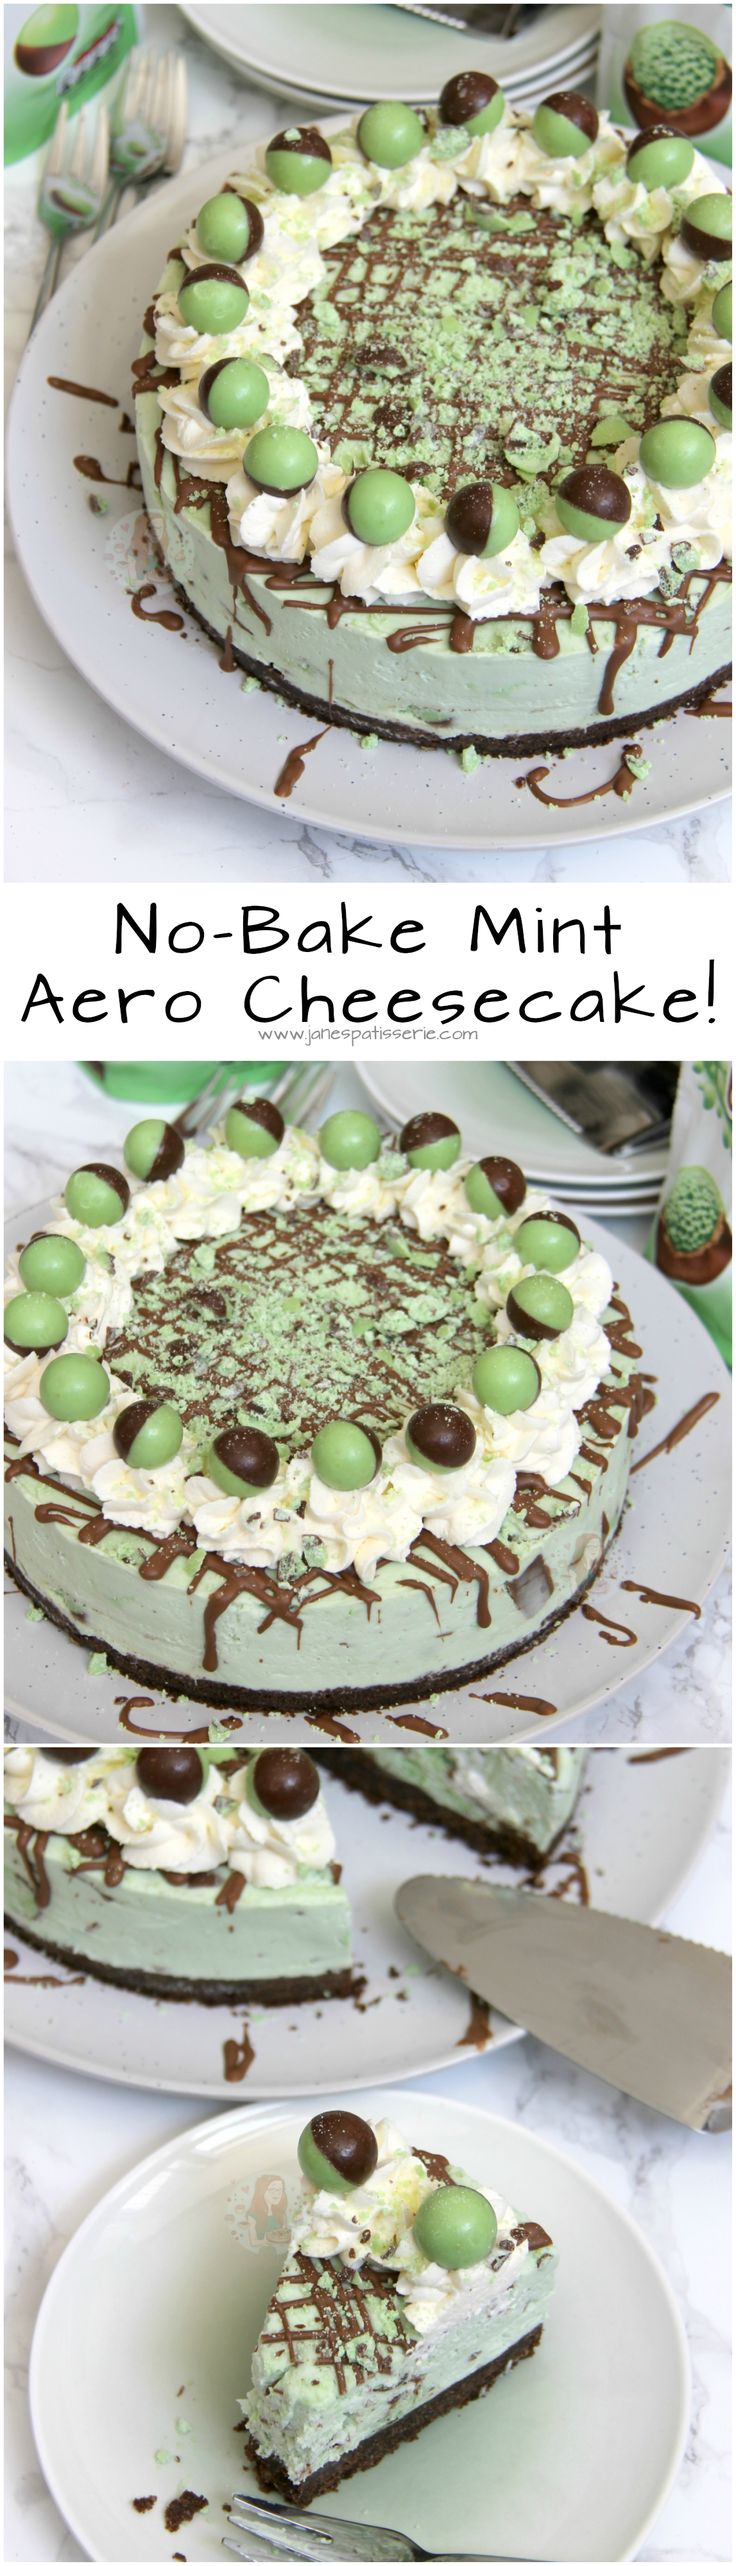 No-Bake Mint Aero Cheesecake! ❤️ Chocolate Digestive base, Mint Aero Cheesecake filling, and even more Mint!